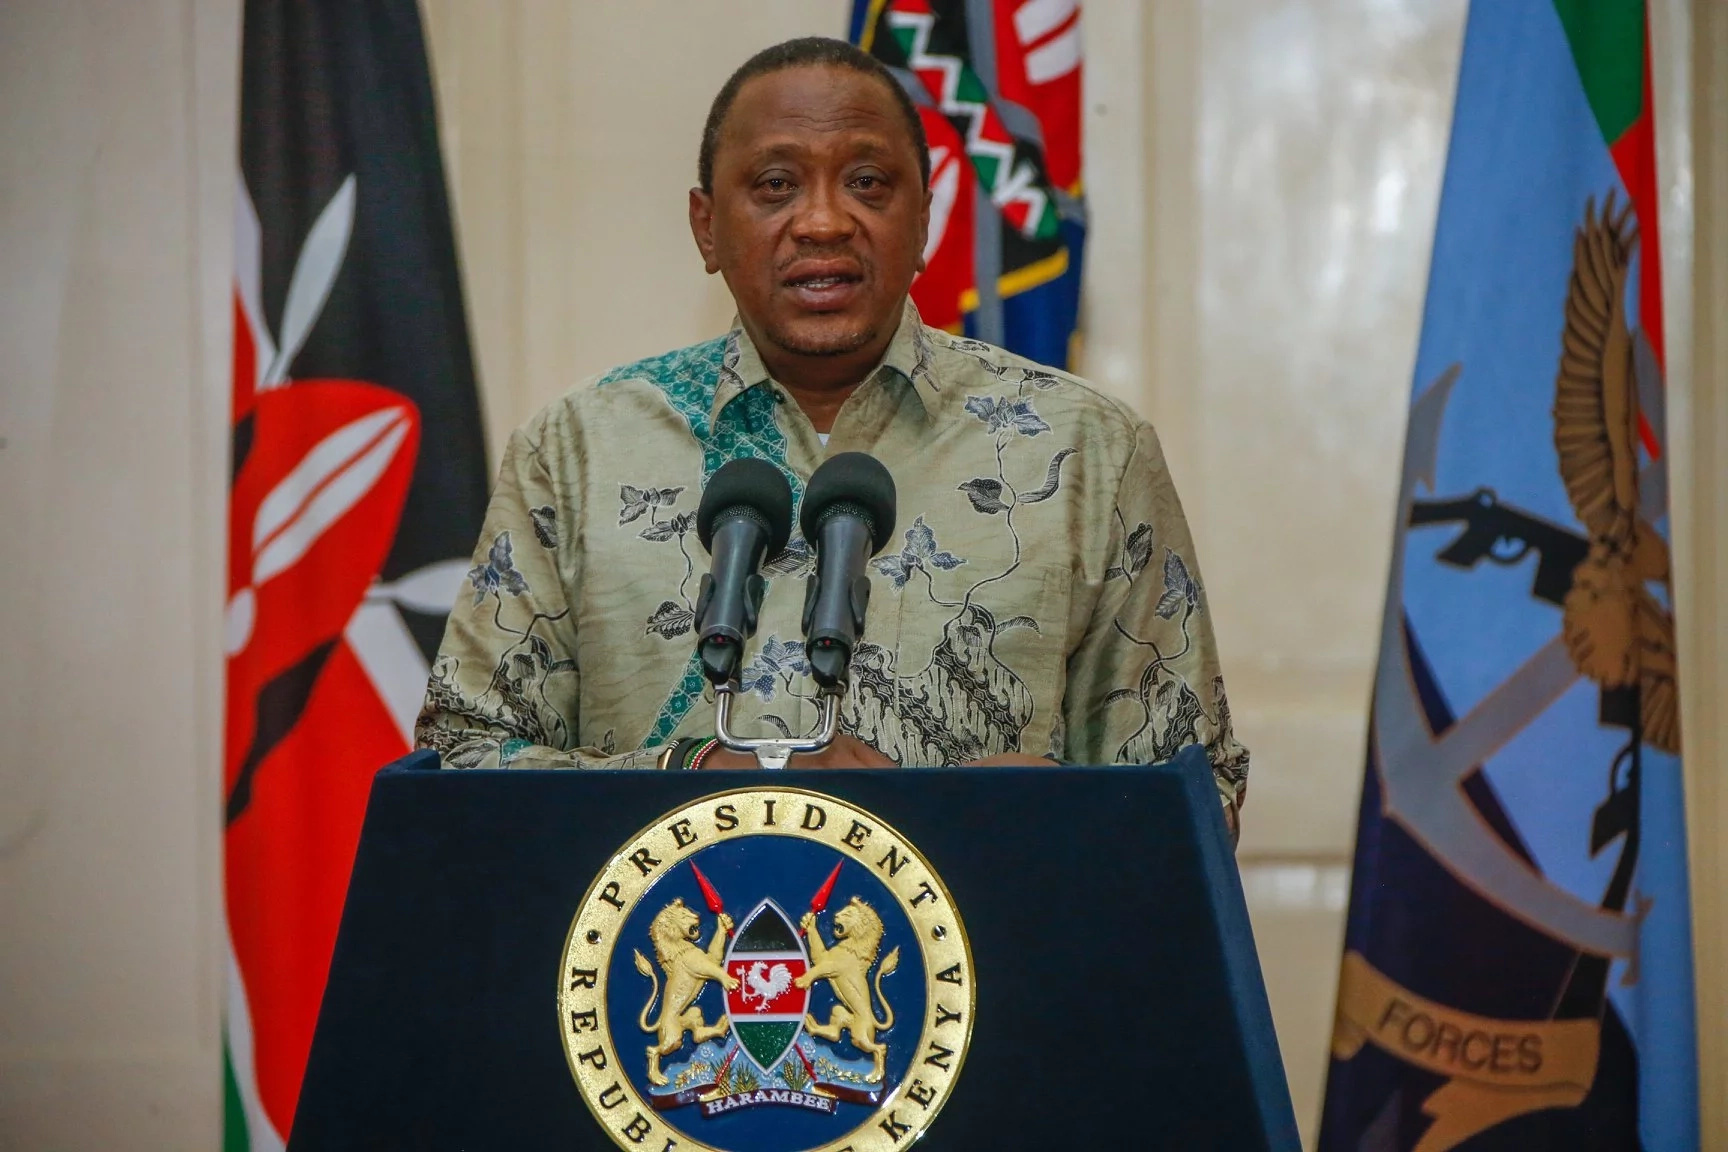 Pack and go - Uhuru orders journalists out of his event